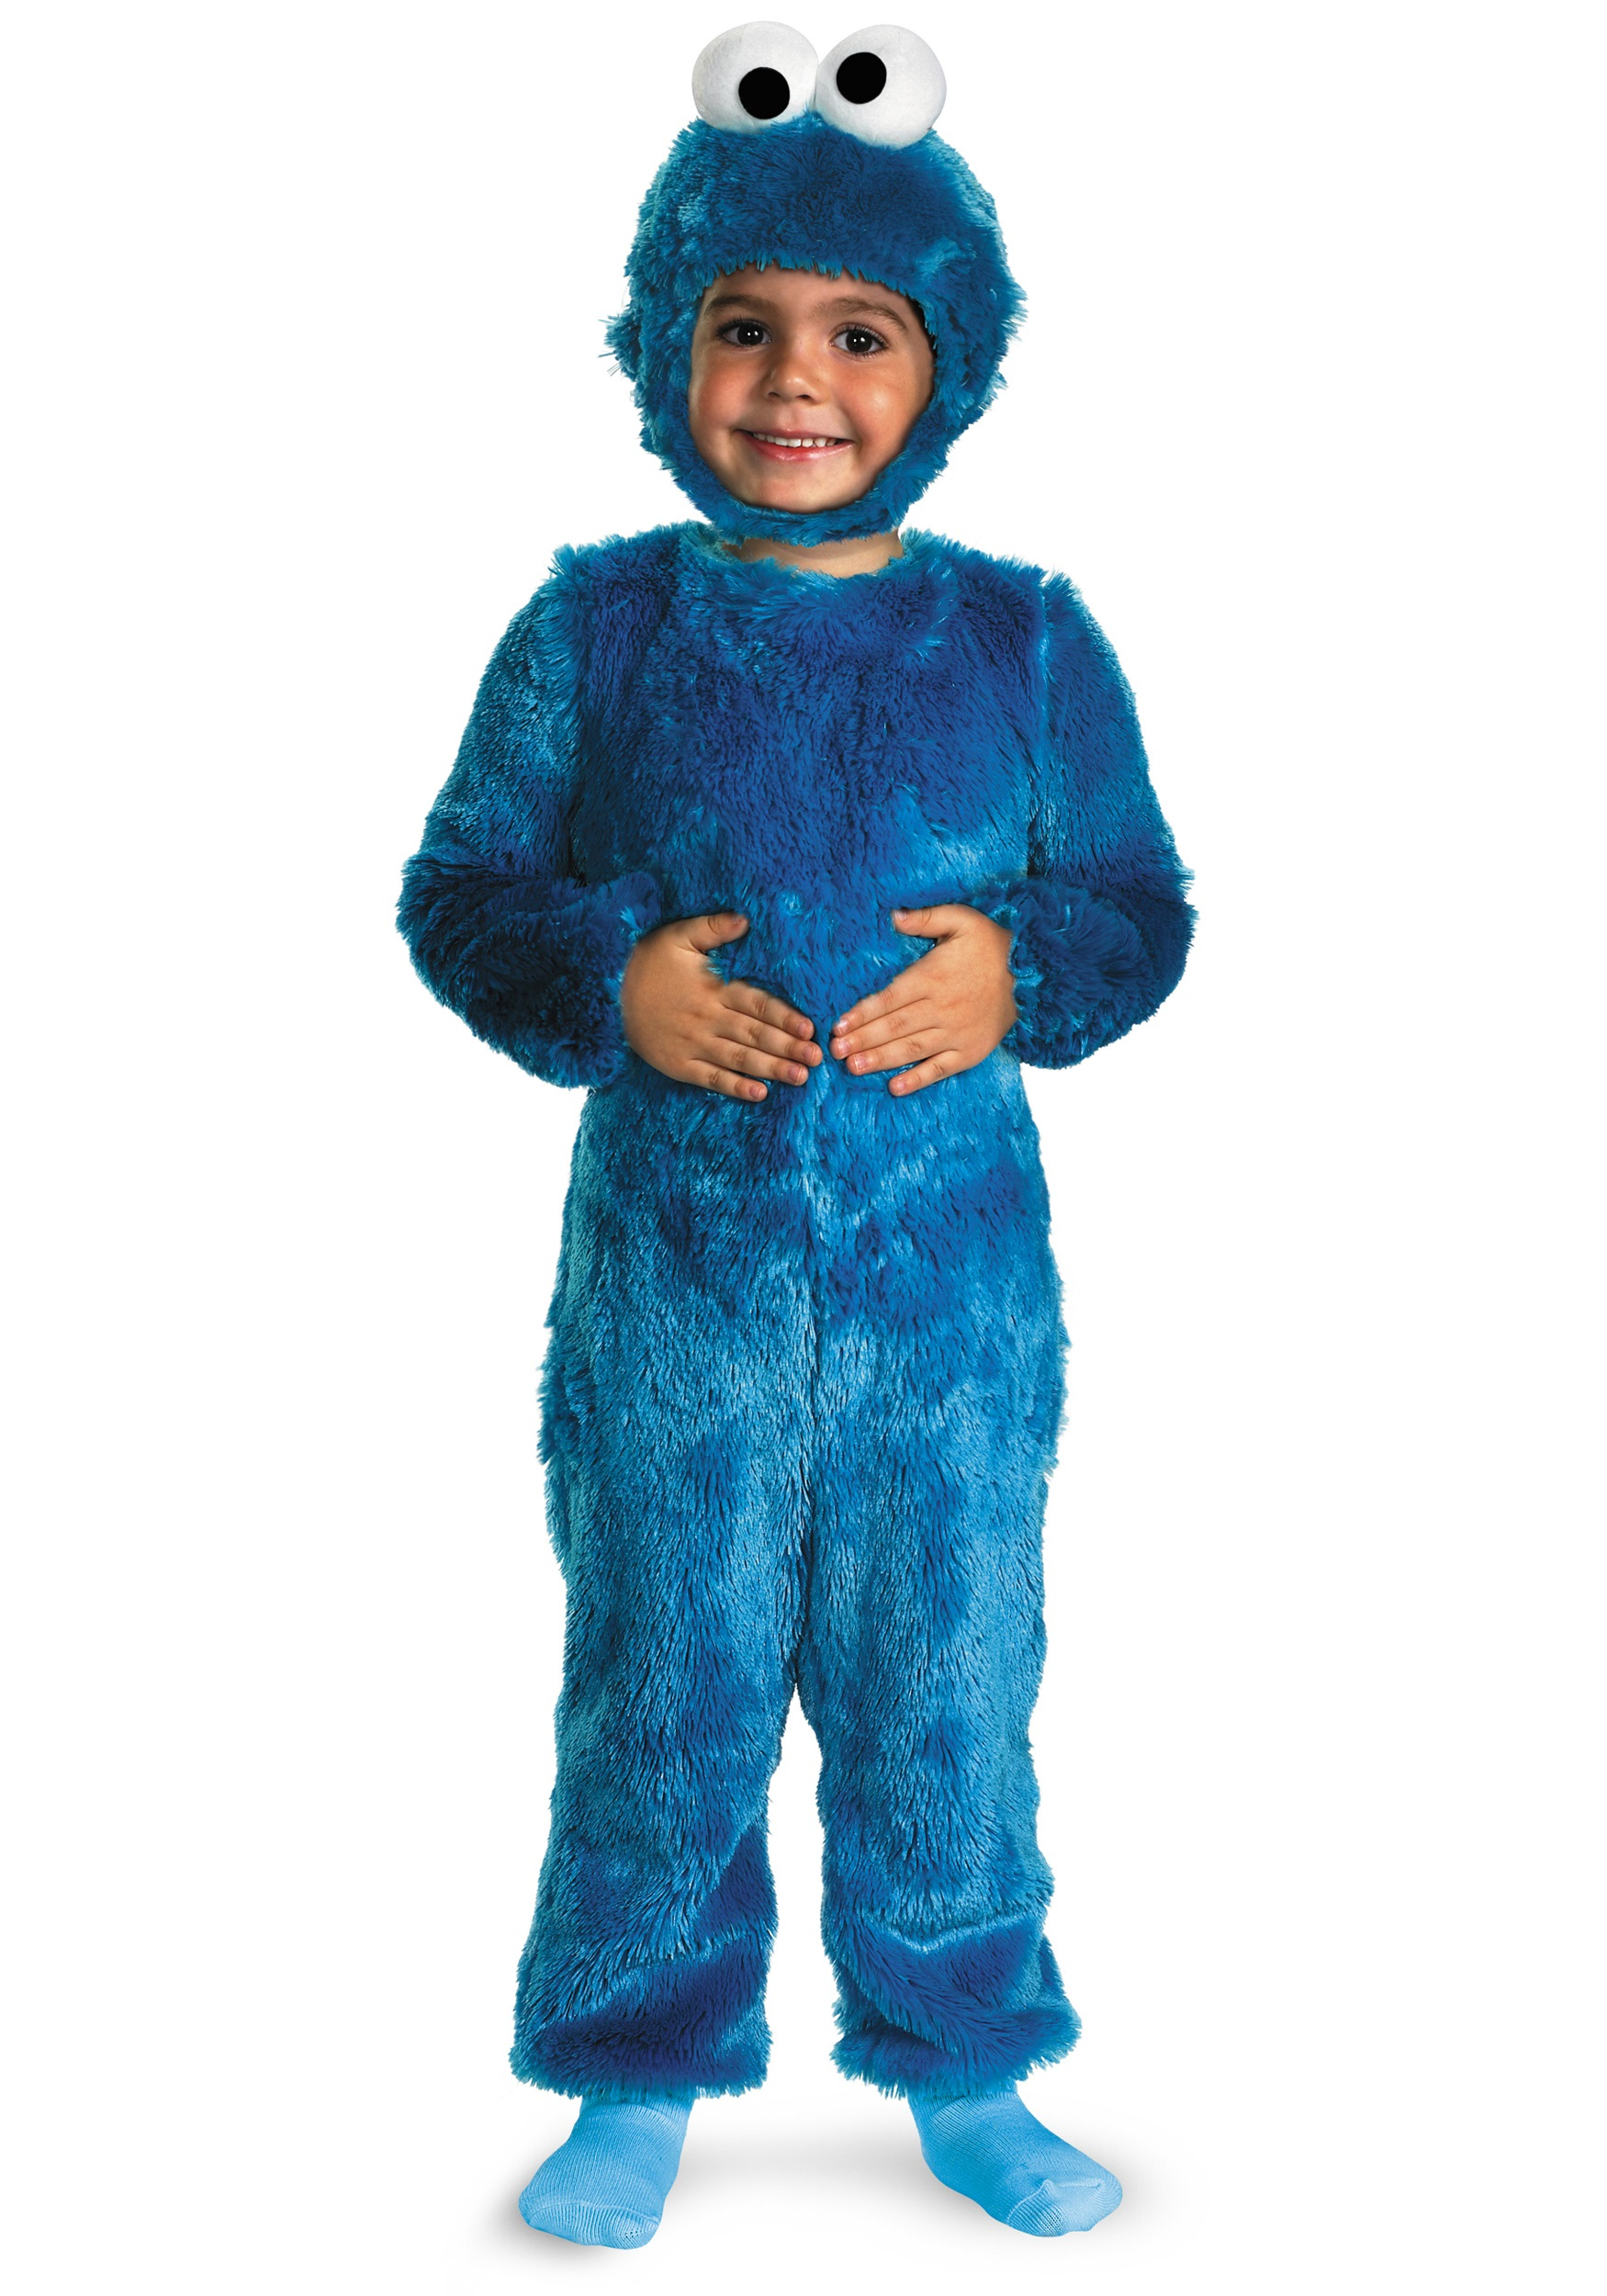 Toddler Furry Cookie Monster Costume  sc 1 st  Halloween Costumes & Toddler Furry Cookie Monster Costume - Halloween Costumes